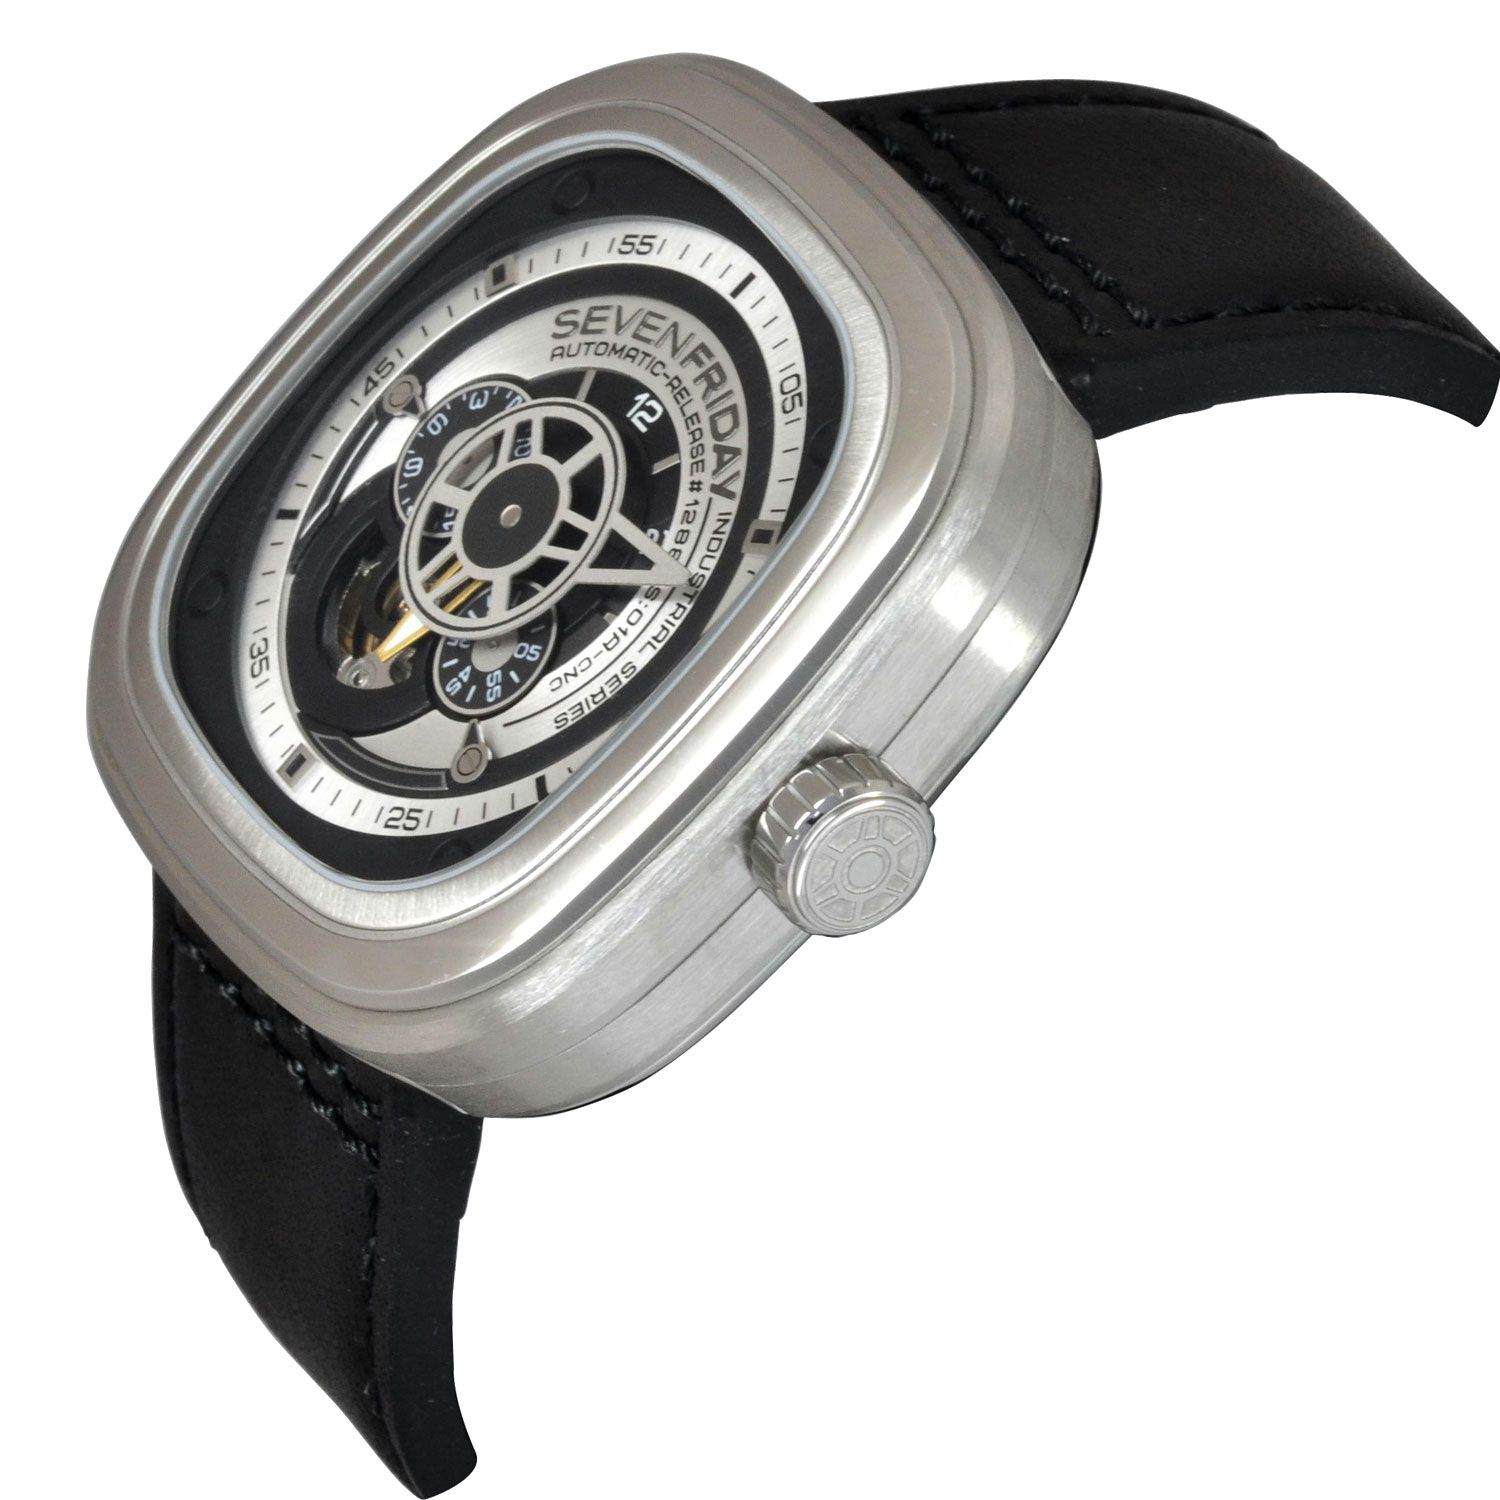 sevenfriday friday automatic shop pakistan essence online watch s in watches paksitan mens men seven bright industrial